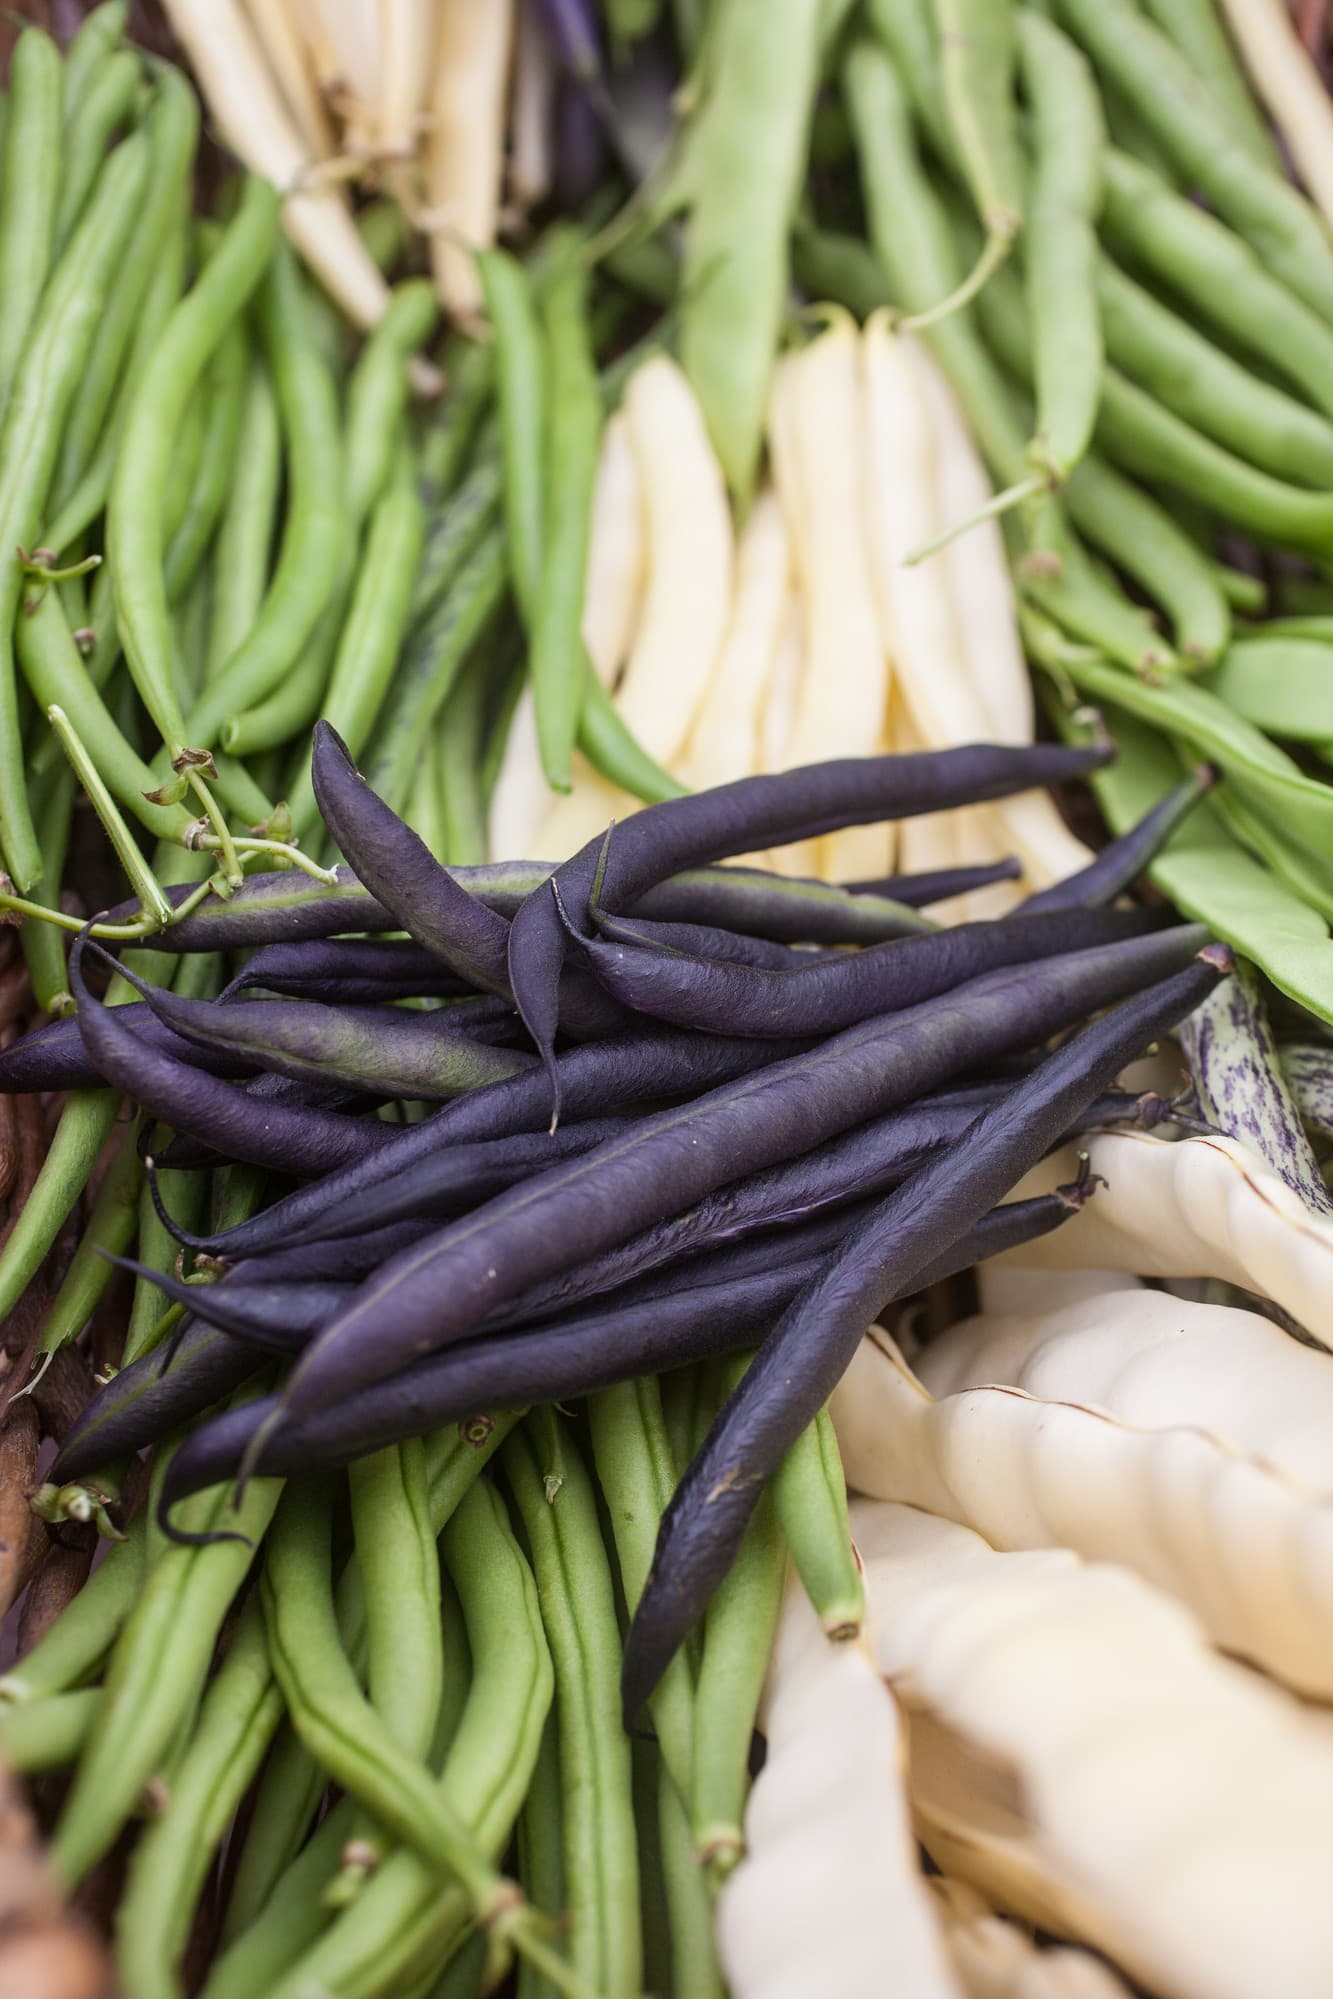 Different snap beans that are lovely for a summer lunch.